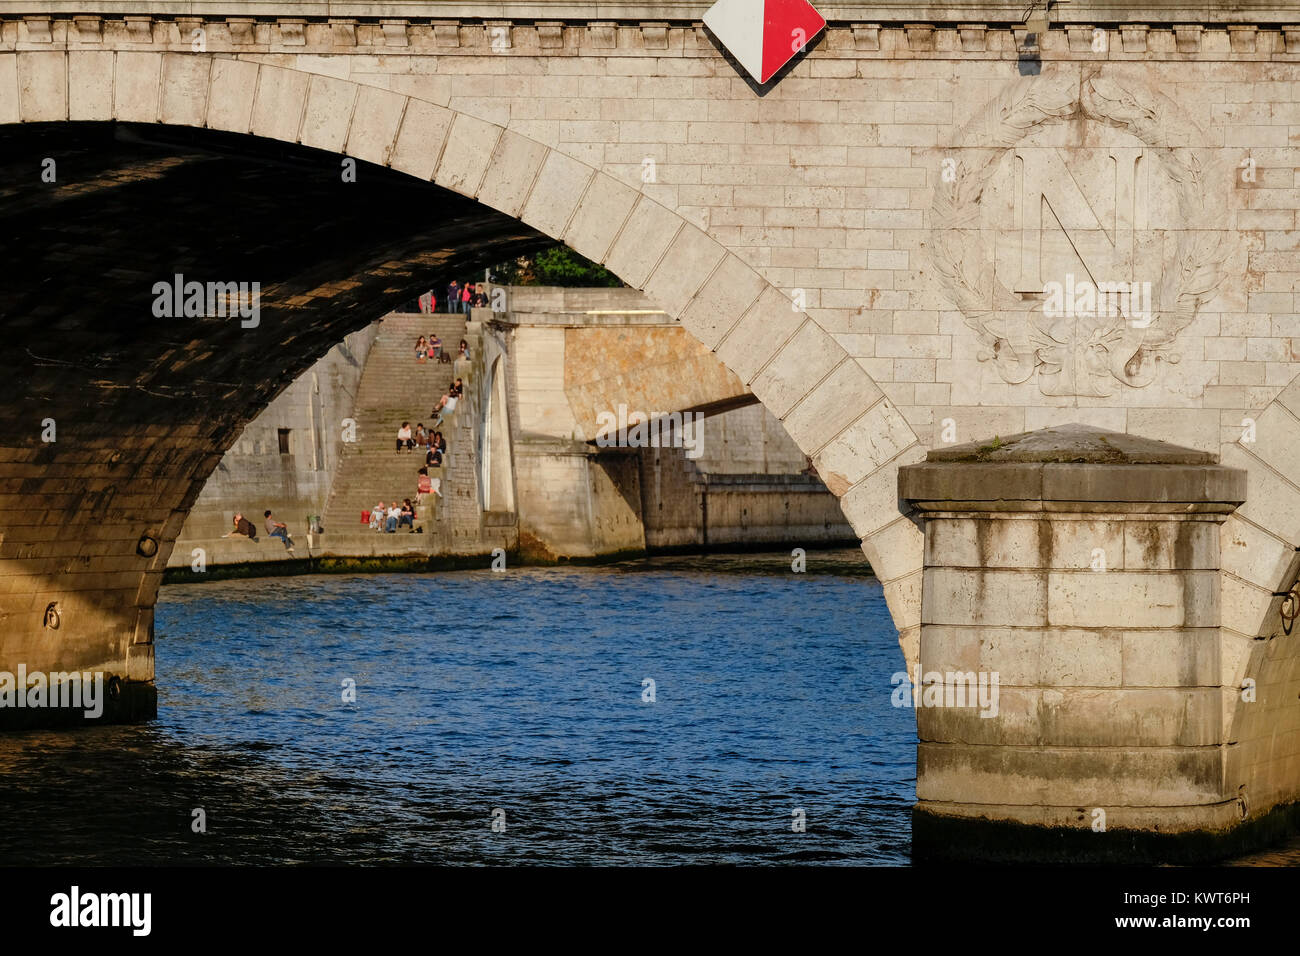 View under the Petit Pont to the Pont au Double and people sitting on the stairs going down to the Seine, Paris, - Stock Image